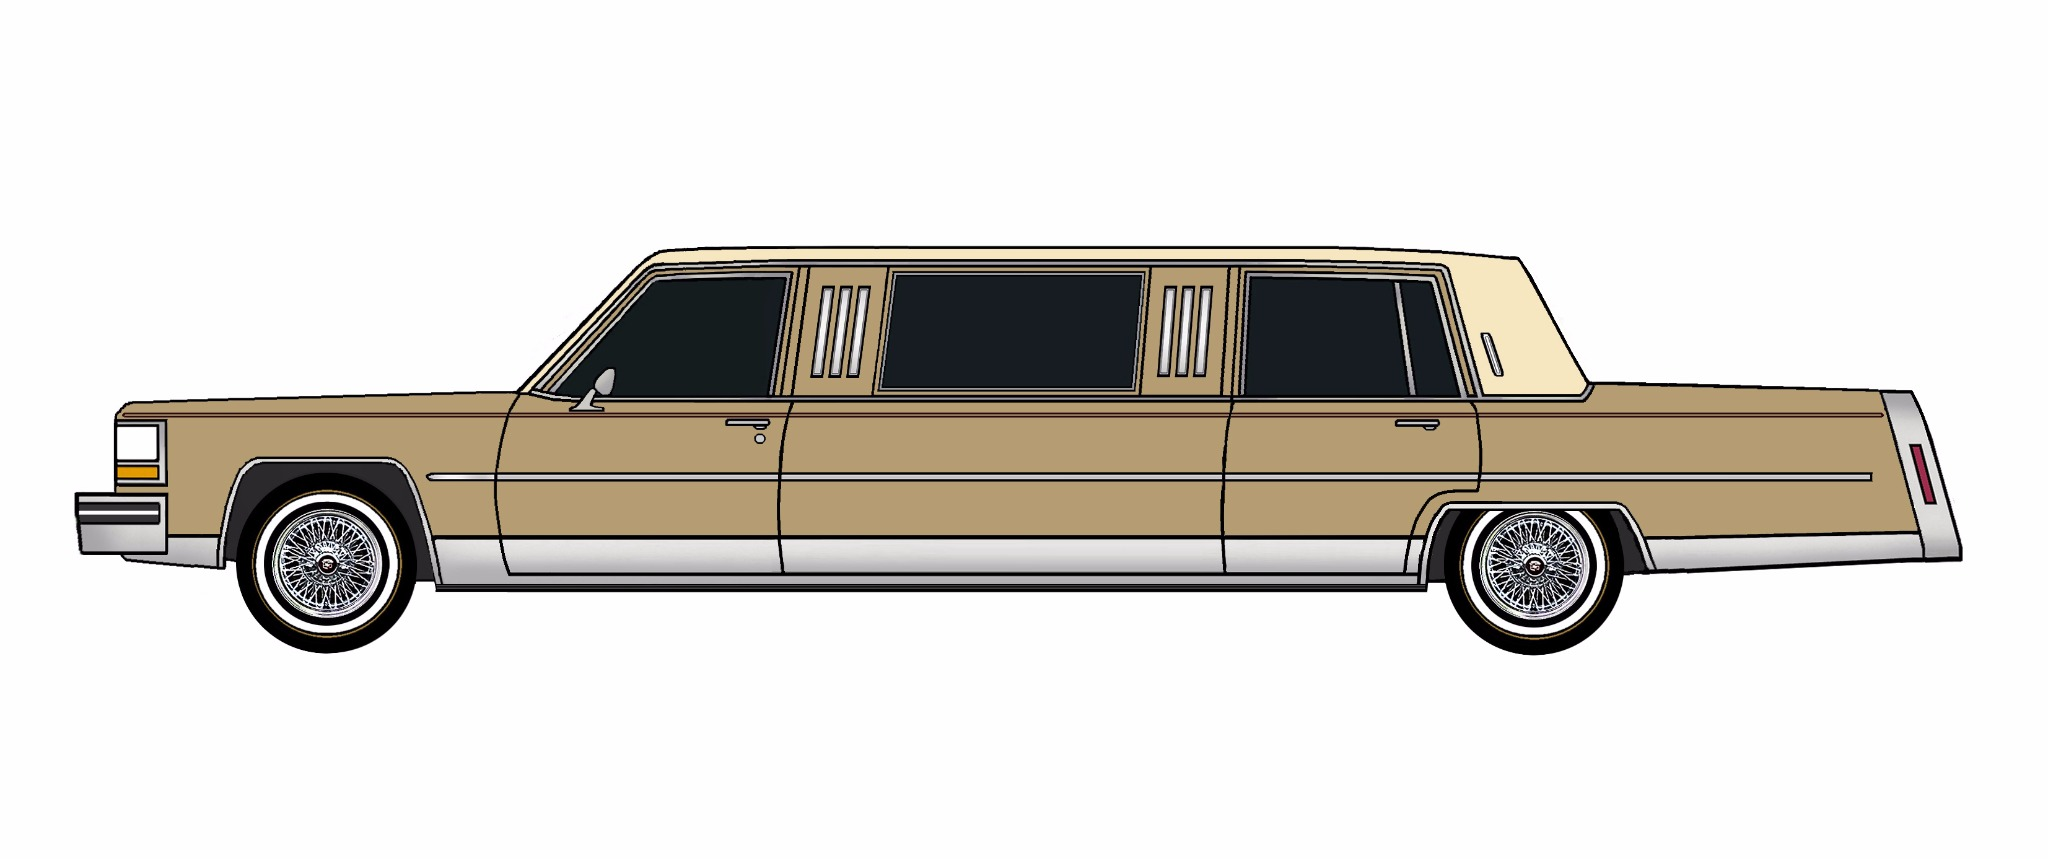 1984 Cadillac Fleetwood Brougham Limo BRONZE